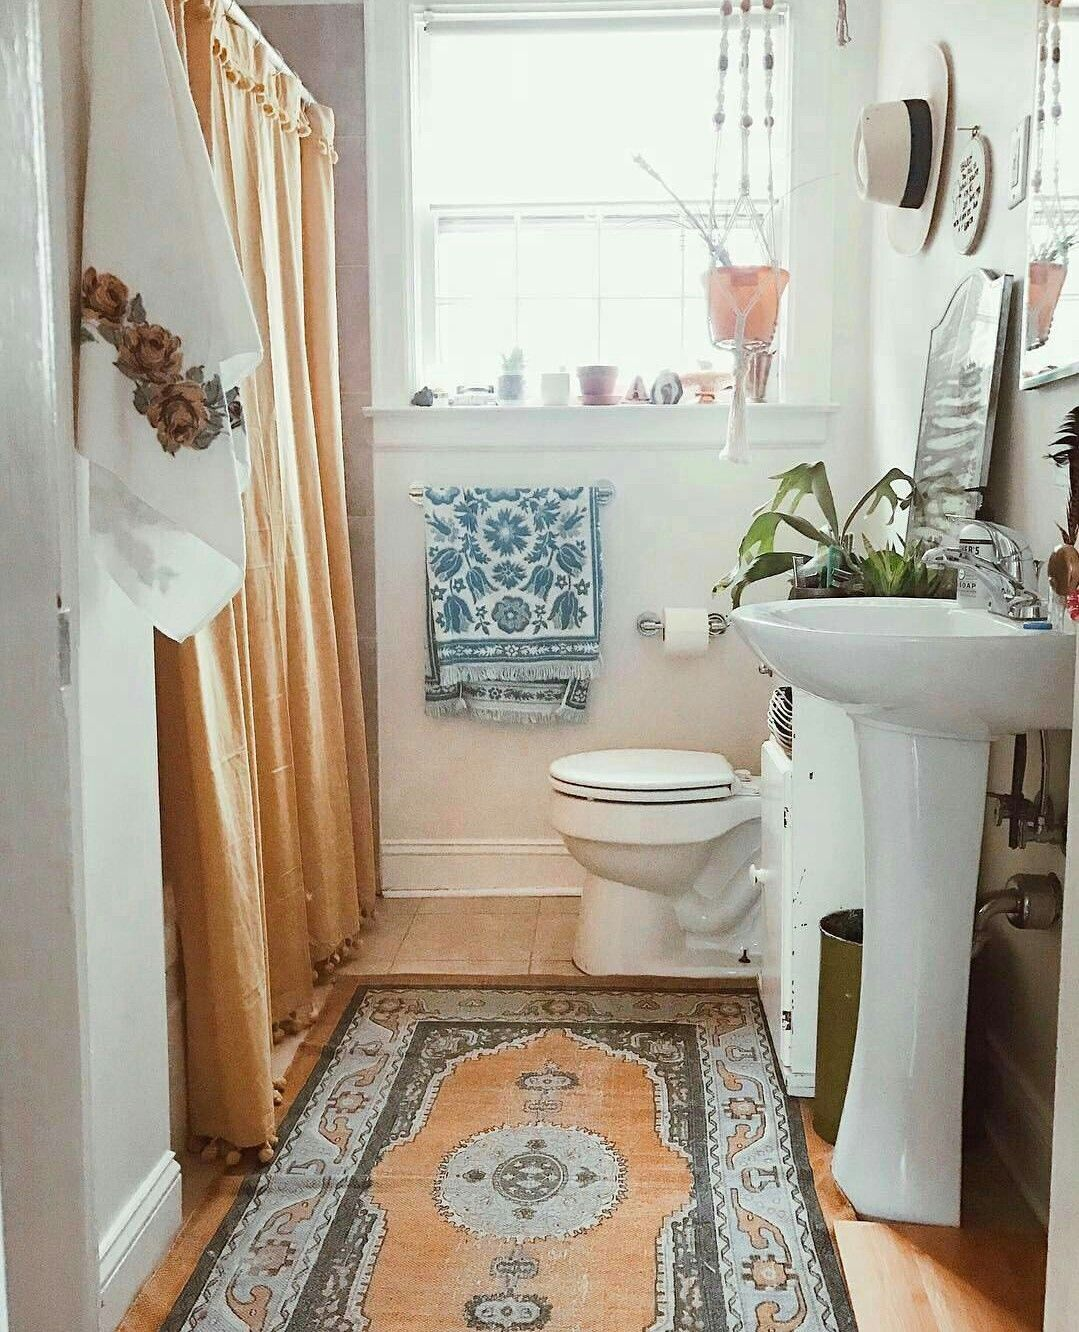 Home design ideas decorating cozy bright bathroom bohemian also leahhofff uohome dream in pinterest rh